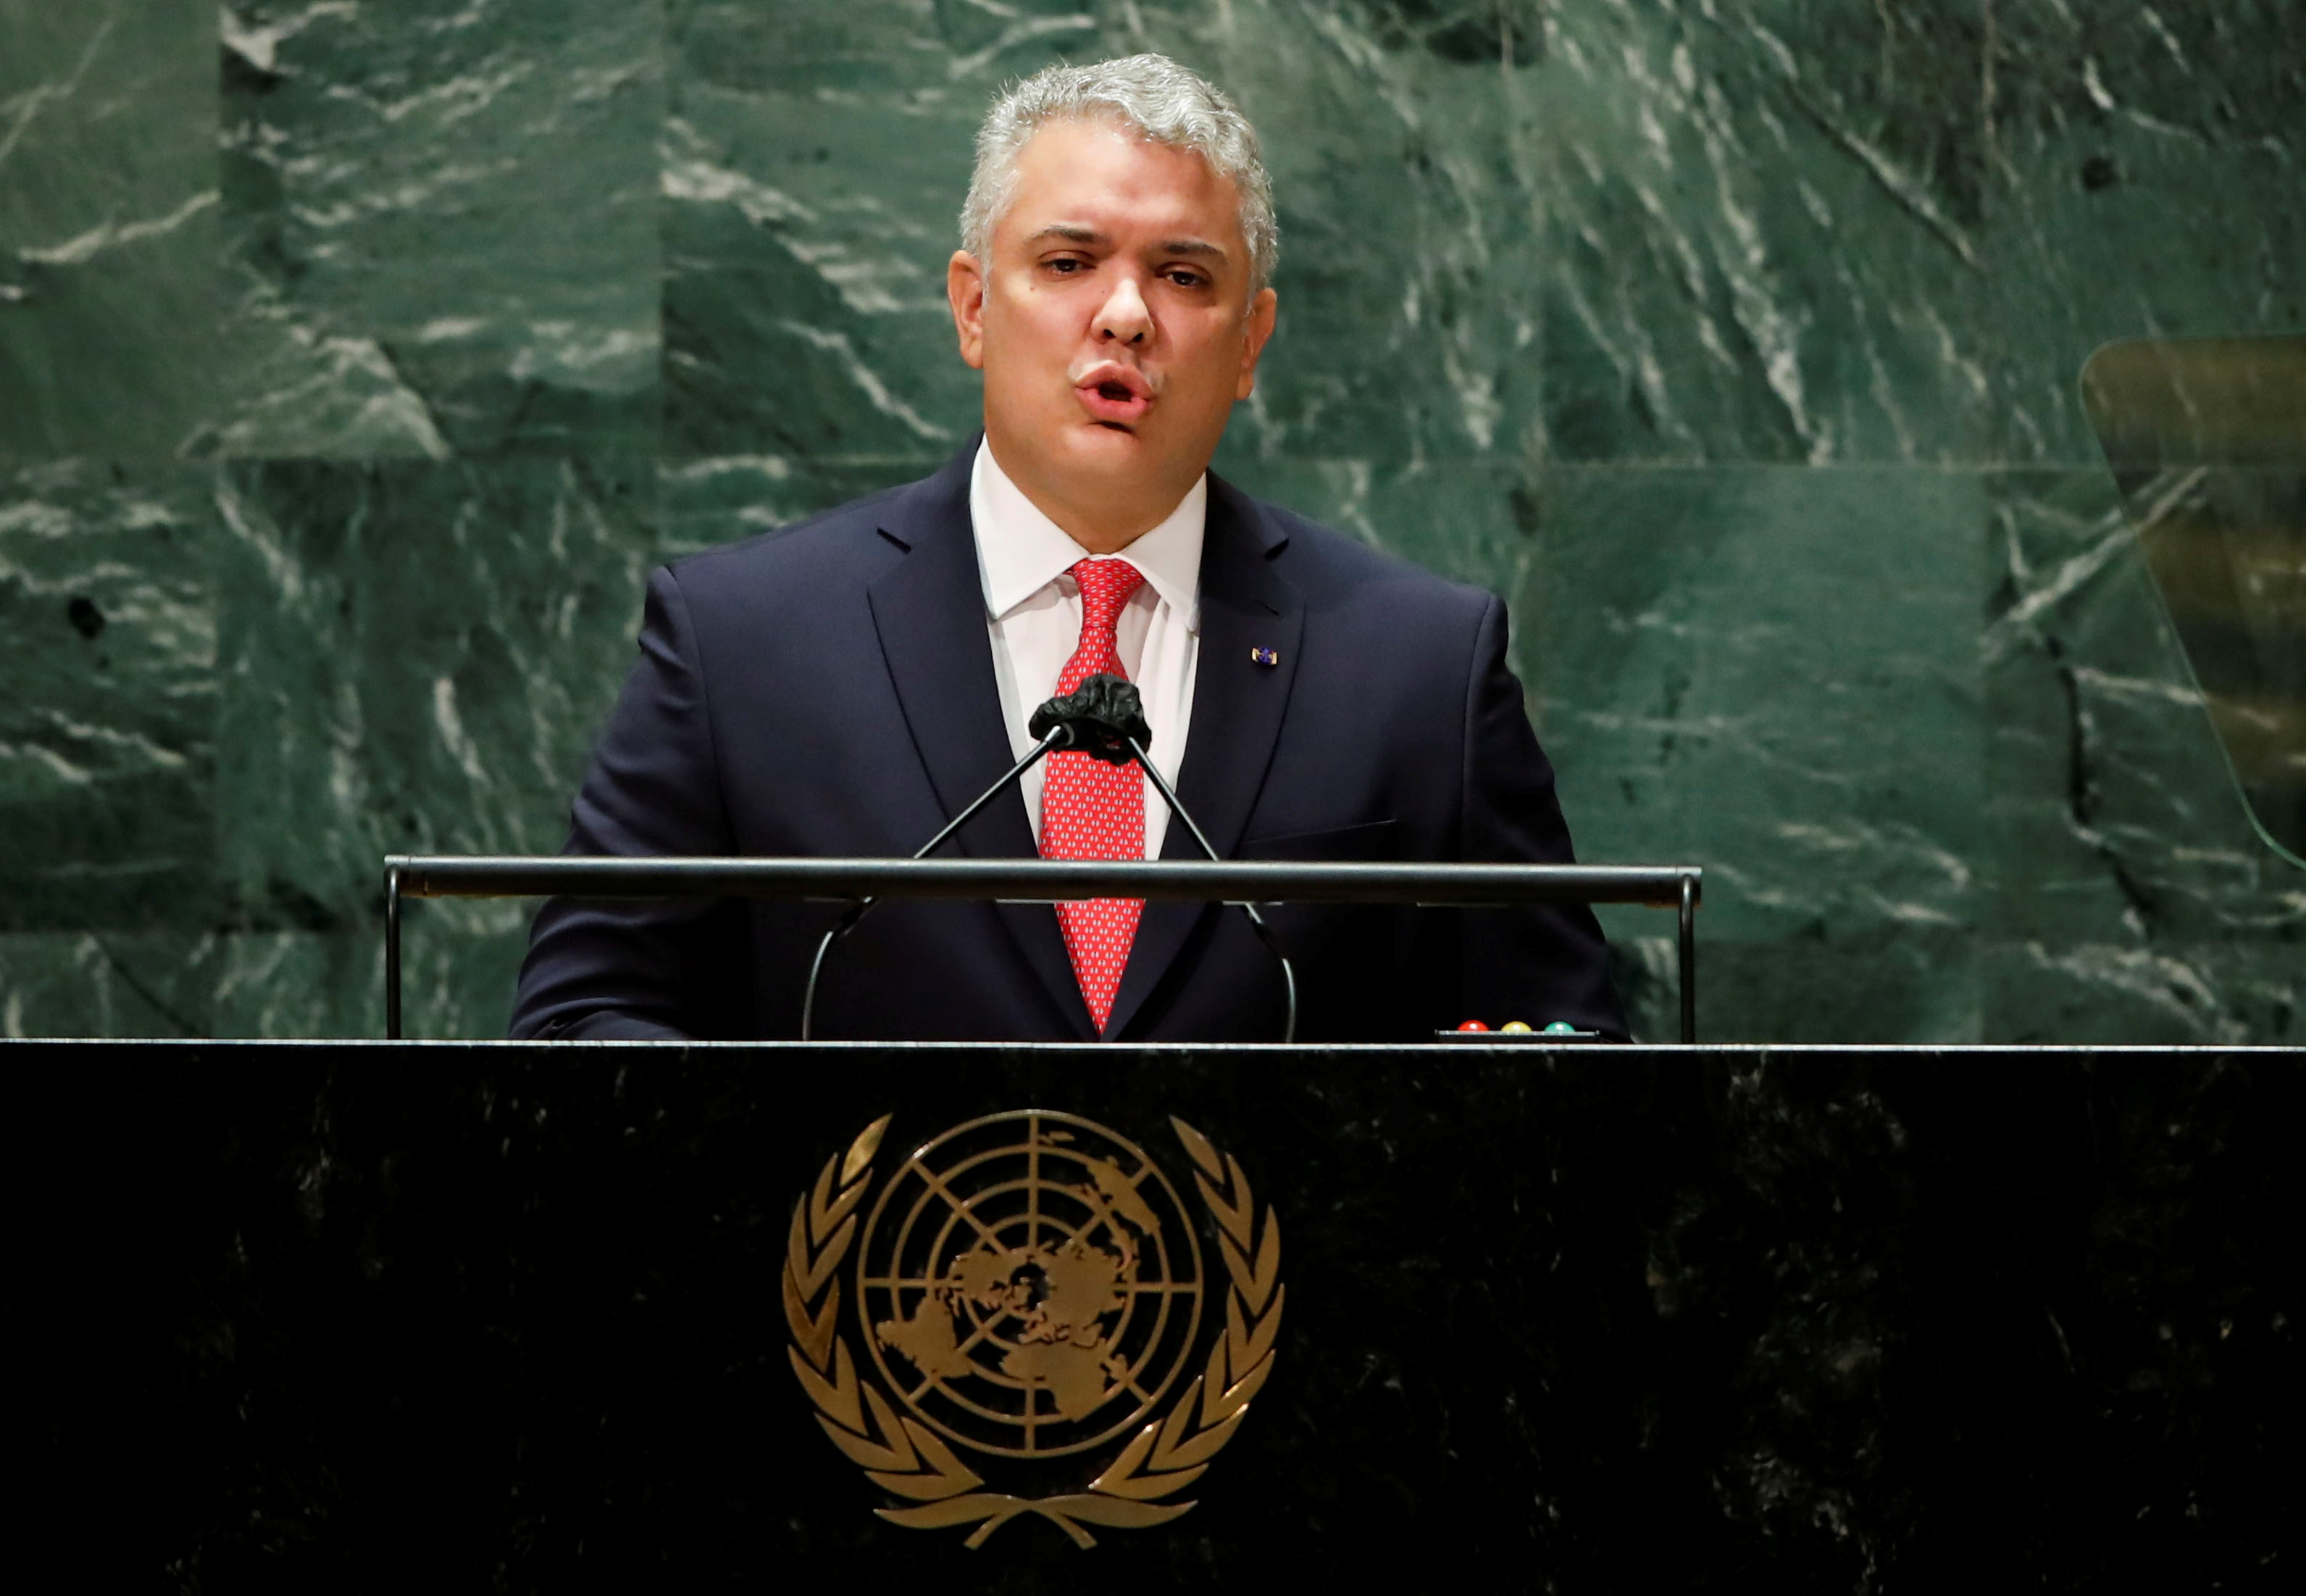 Colombia's President Ivan Duque addresses the 76th Session of the U.N. General Assembly in New York City, U.S., September 21, 2021.  REUTERS/Eduardo Munoz/Pool